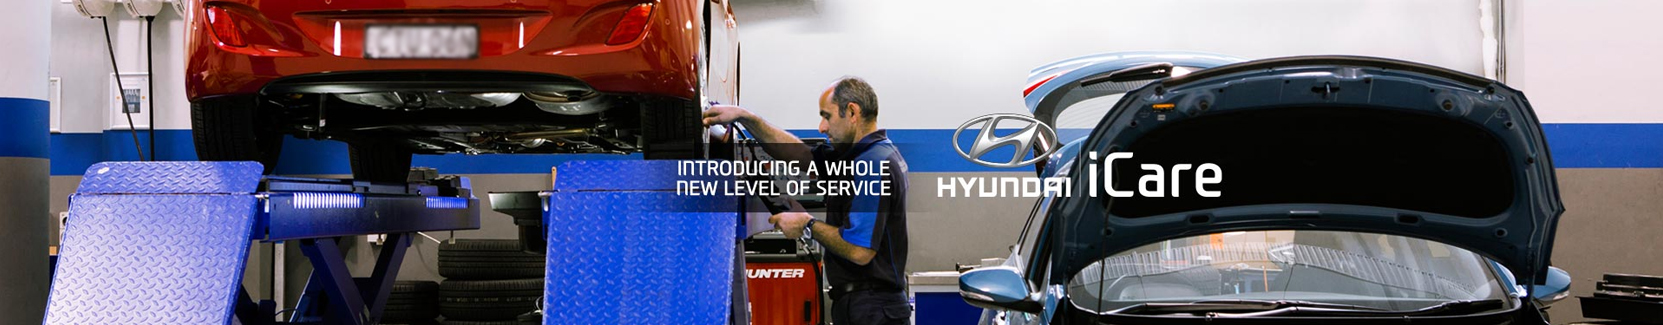 Hyundai iCare - introducing a whole new level of service at Brendale Hyundai Brisbane.